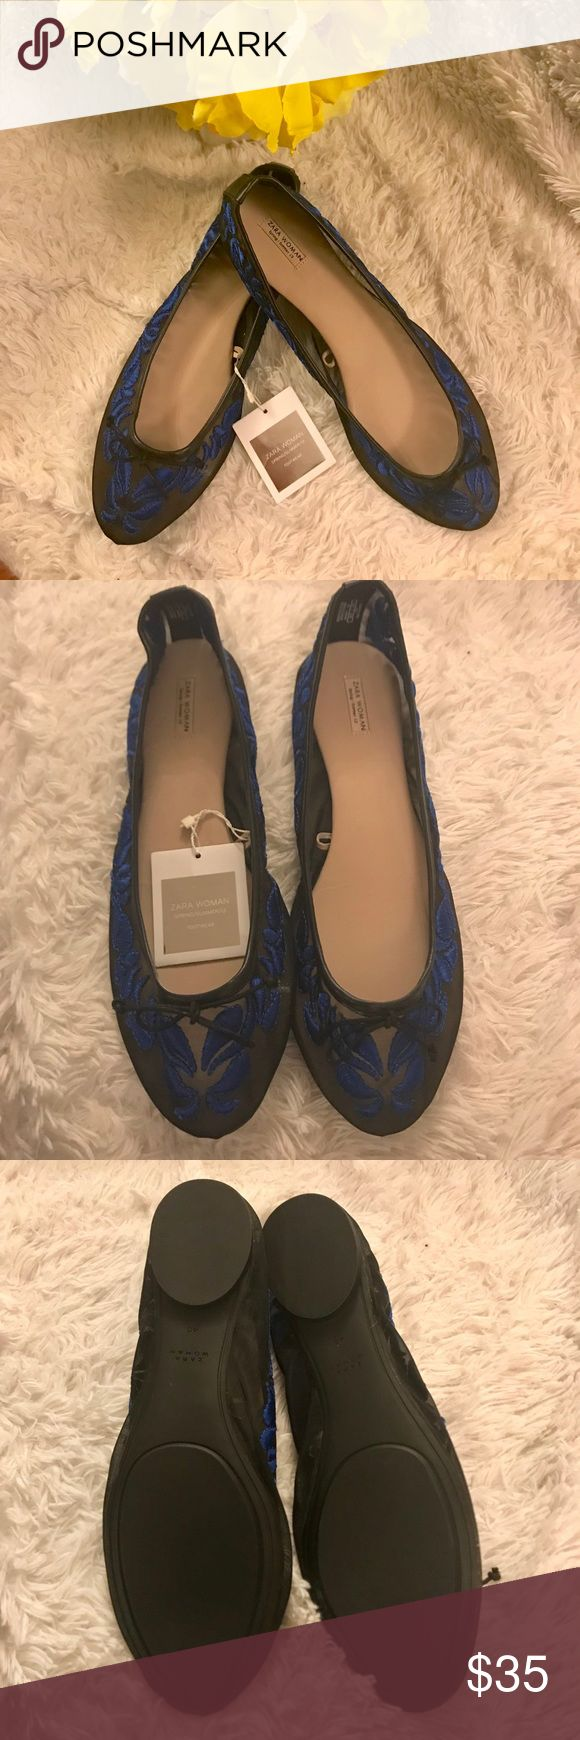 """NWT Zara Woman Ballet Flats 40/9 Welcome to our closet sales! Find us on IG! - CaitieKatandCo PLEASE READ ITEM DESCRIPTION AND ASK QUESTIONS BEFORE BUYING!  NWT Zara Woman Ballet Flats sz 40 (US 9). Beautiful clear mesh-like material with blue embroidery detail and black trim & ribbon. Bottom sole measures 10"""". So pretty in person. Shows a little of skin without having to wear sandals! Perfect way to work the navy and black combo that is so in fashion right now!  REASONABLE OFFERS ONLY PLS…"""